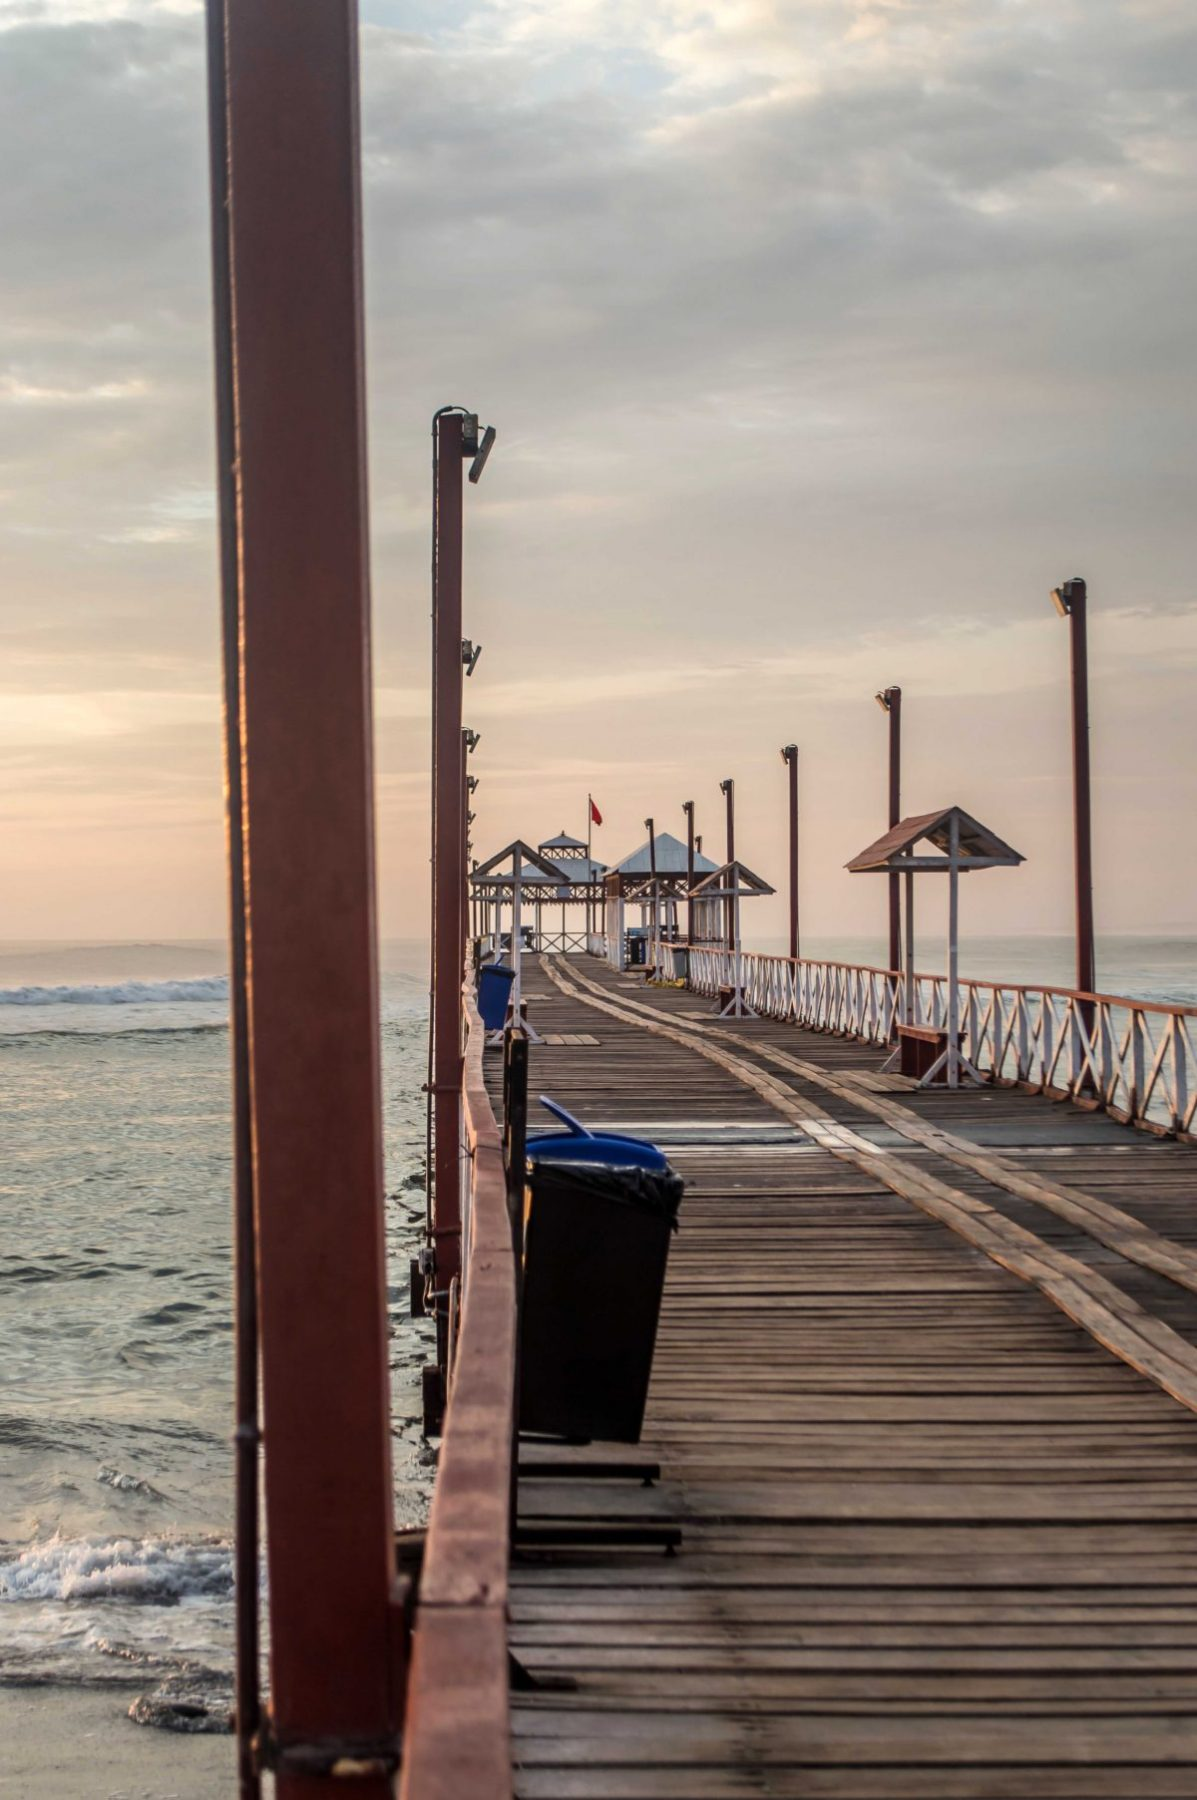 Your Food and Adventure Guide to Huanchaco, Peru